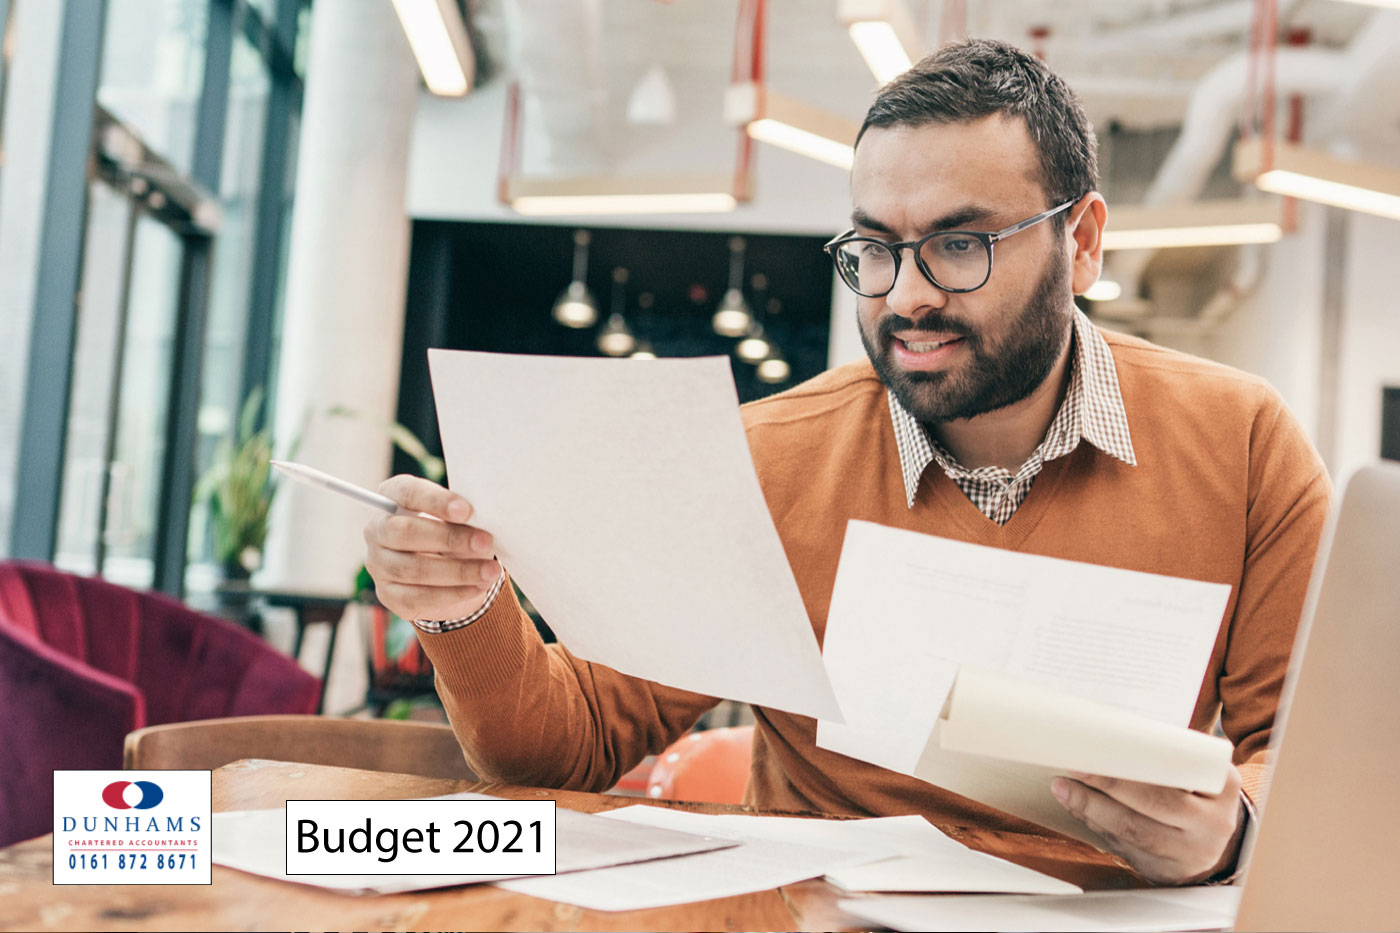 Dunhams Budget Review 2021 - Personal Tax Overview.